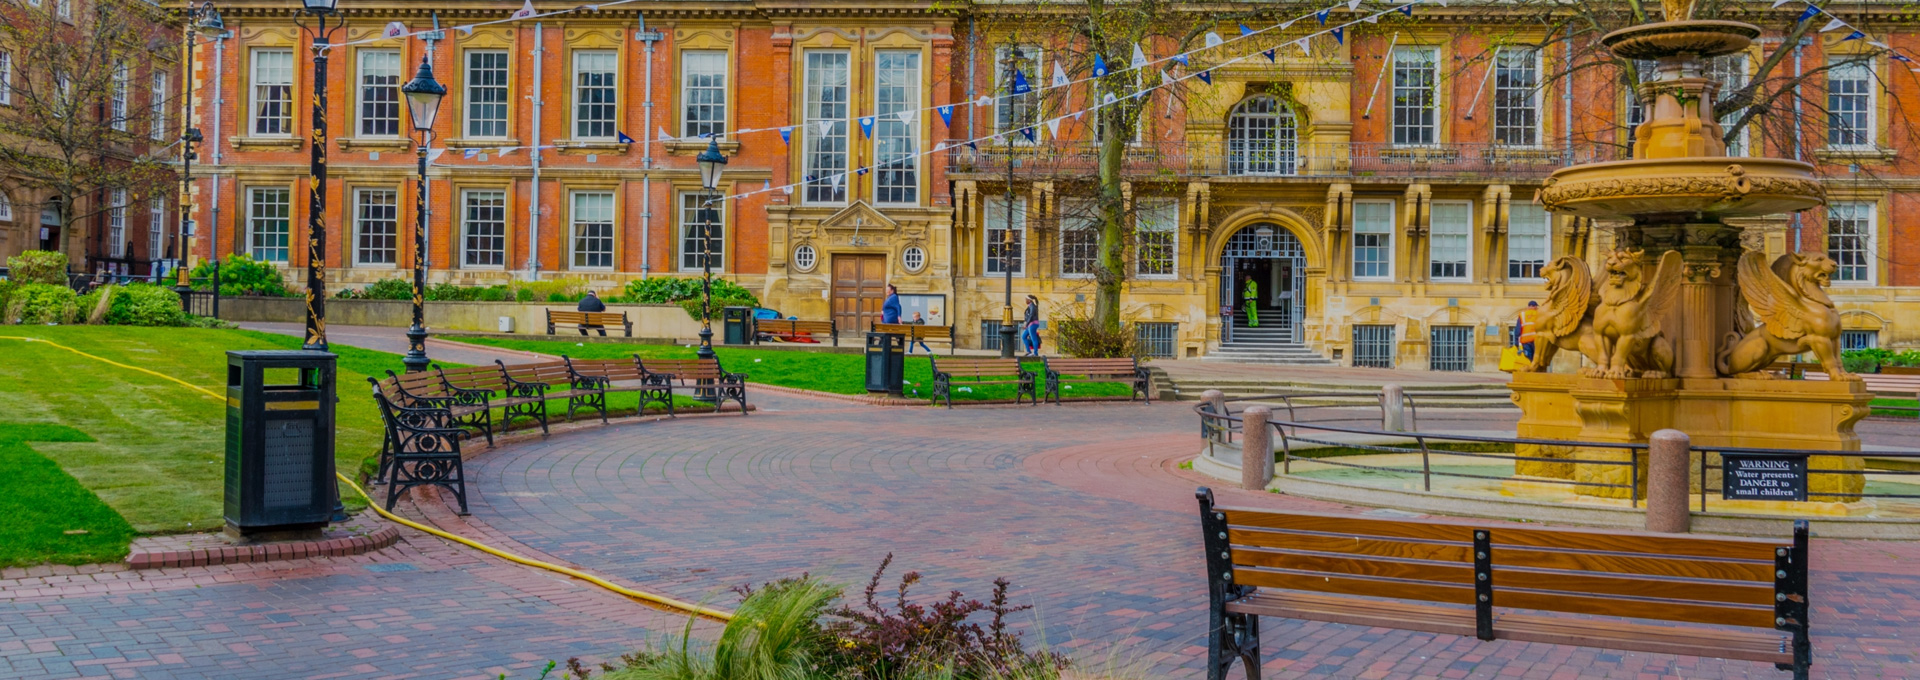 Landscaping project in the centre of Leicester.